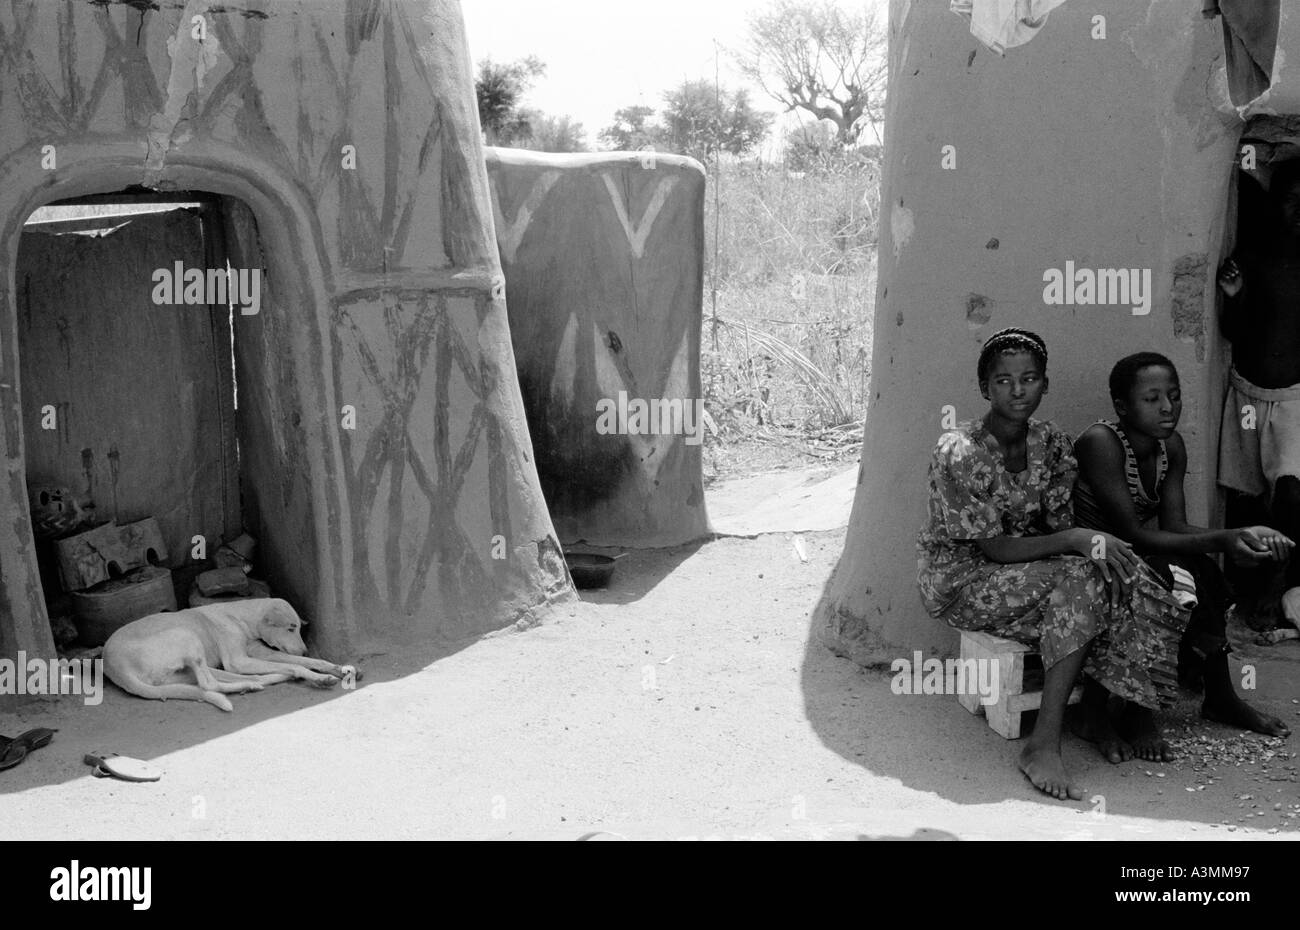 Village life in Northern Ghana - Stock Image